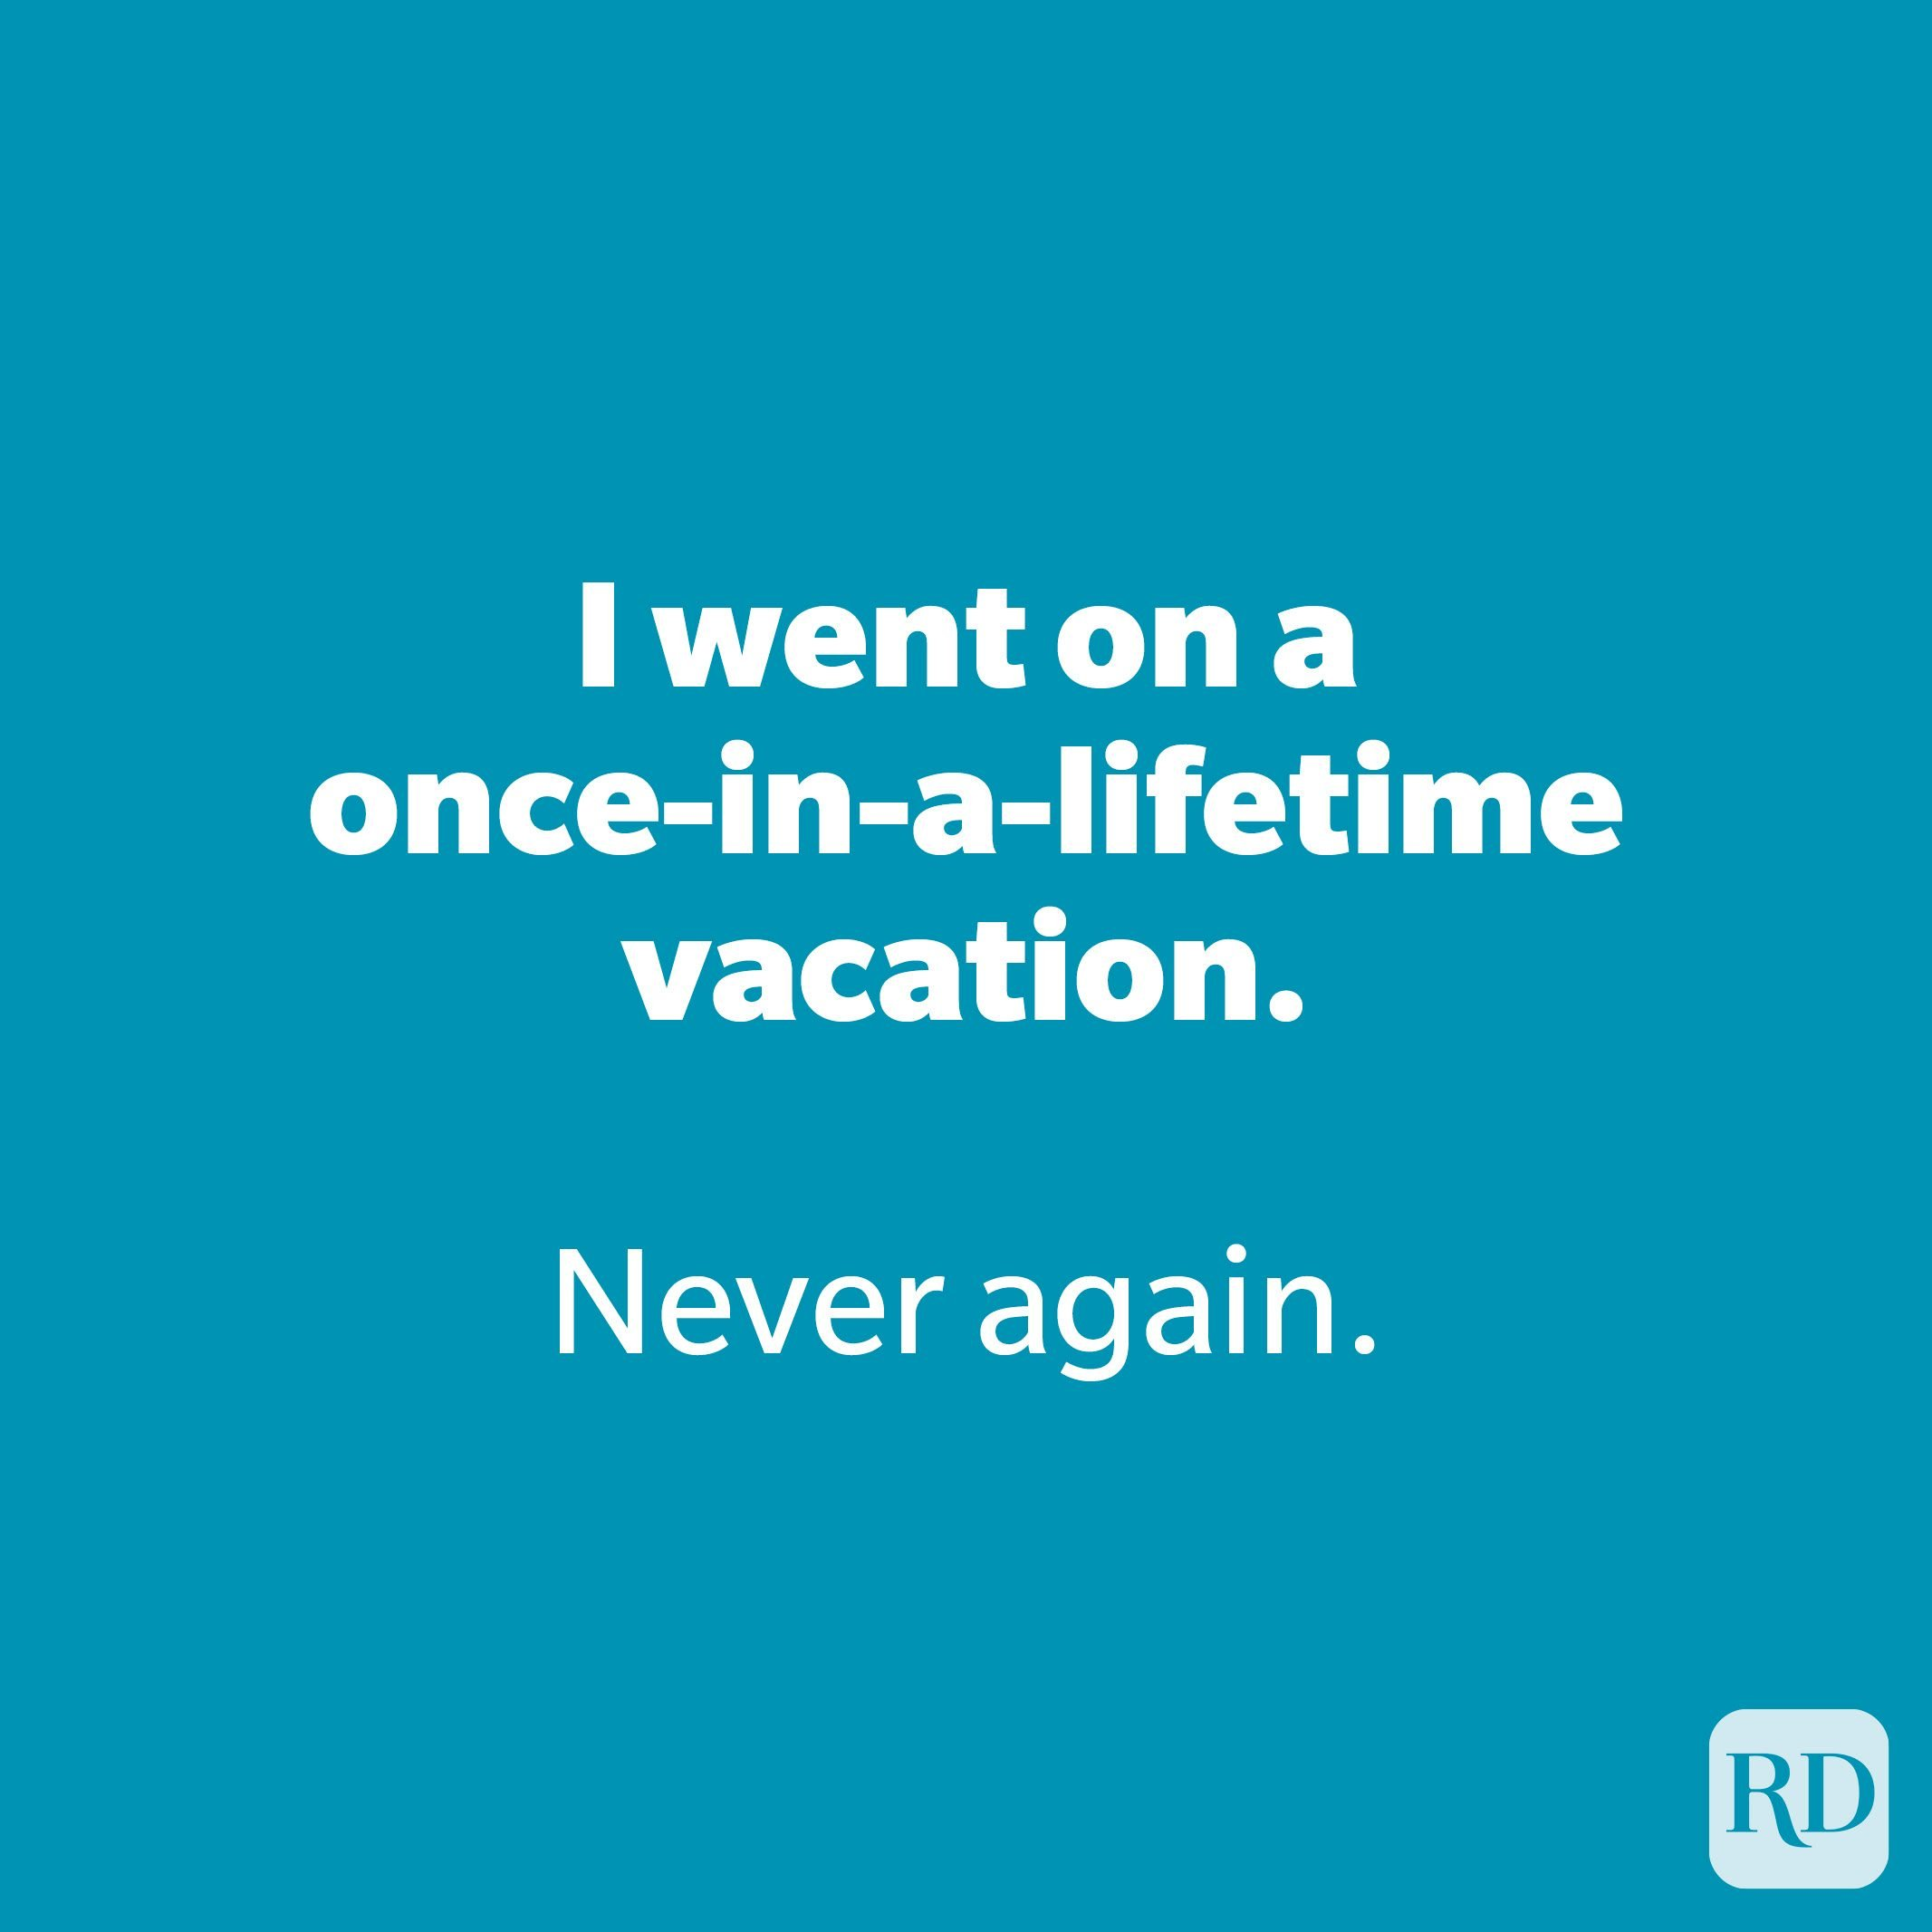 I went on a once-in-a-lifetime vacation.